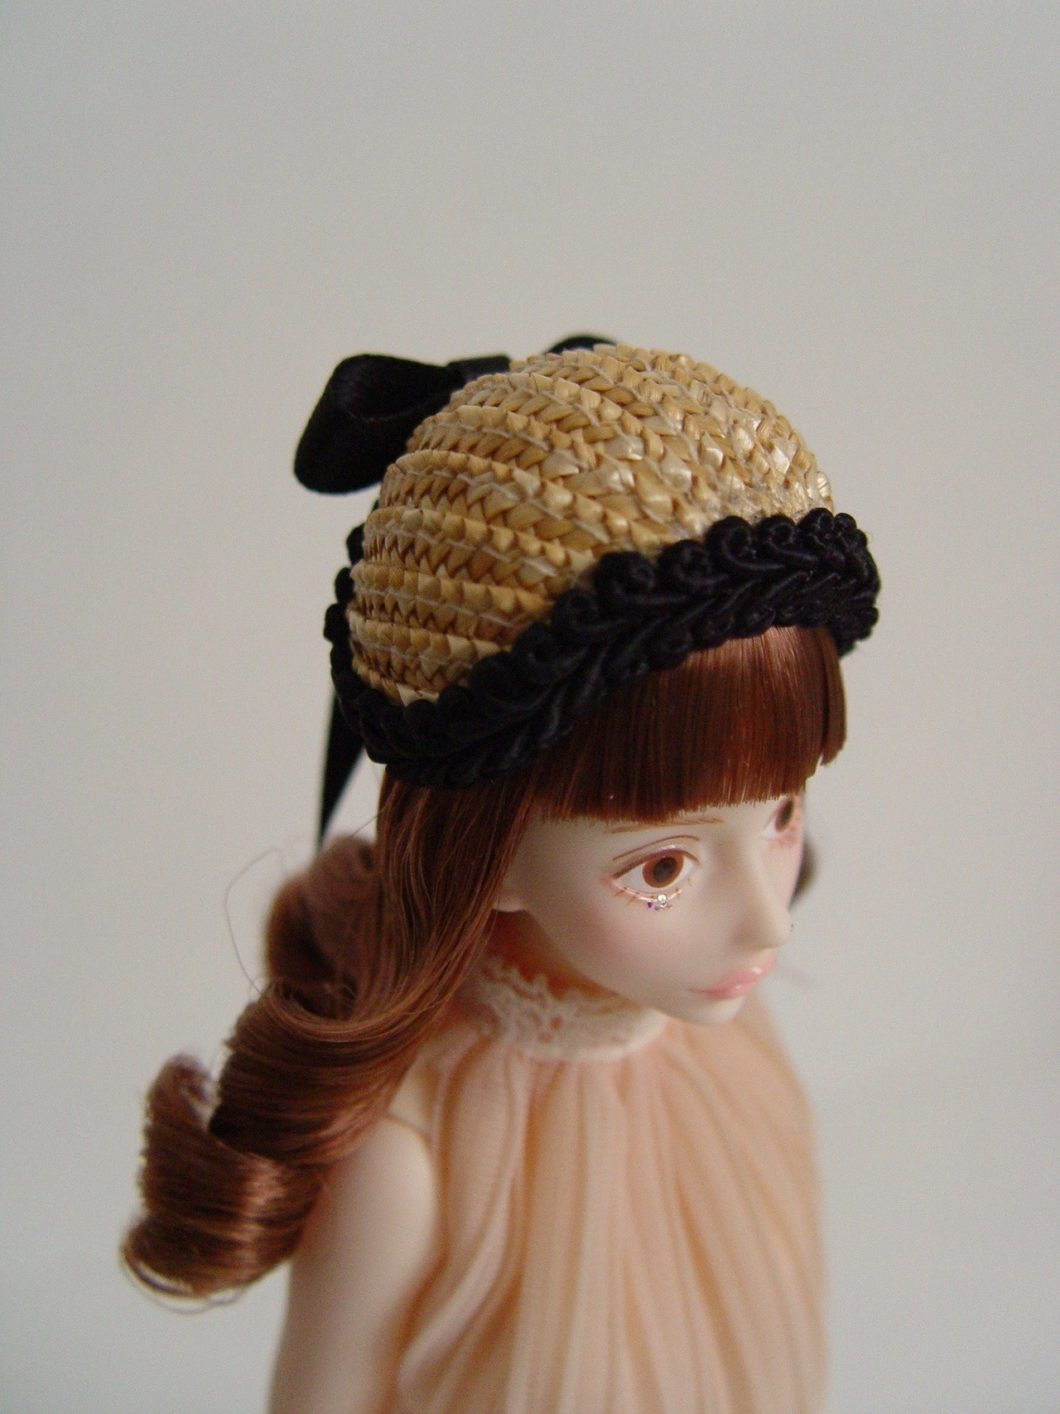 be my baby cherry miyuki odani doll straw hat barbie